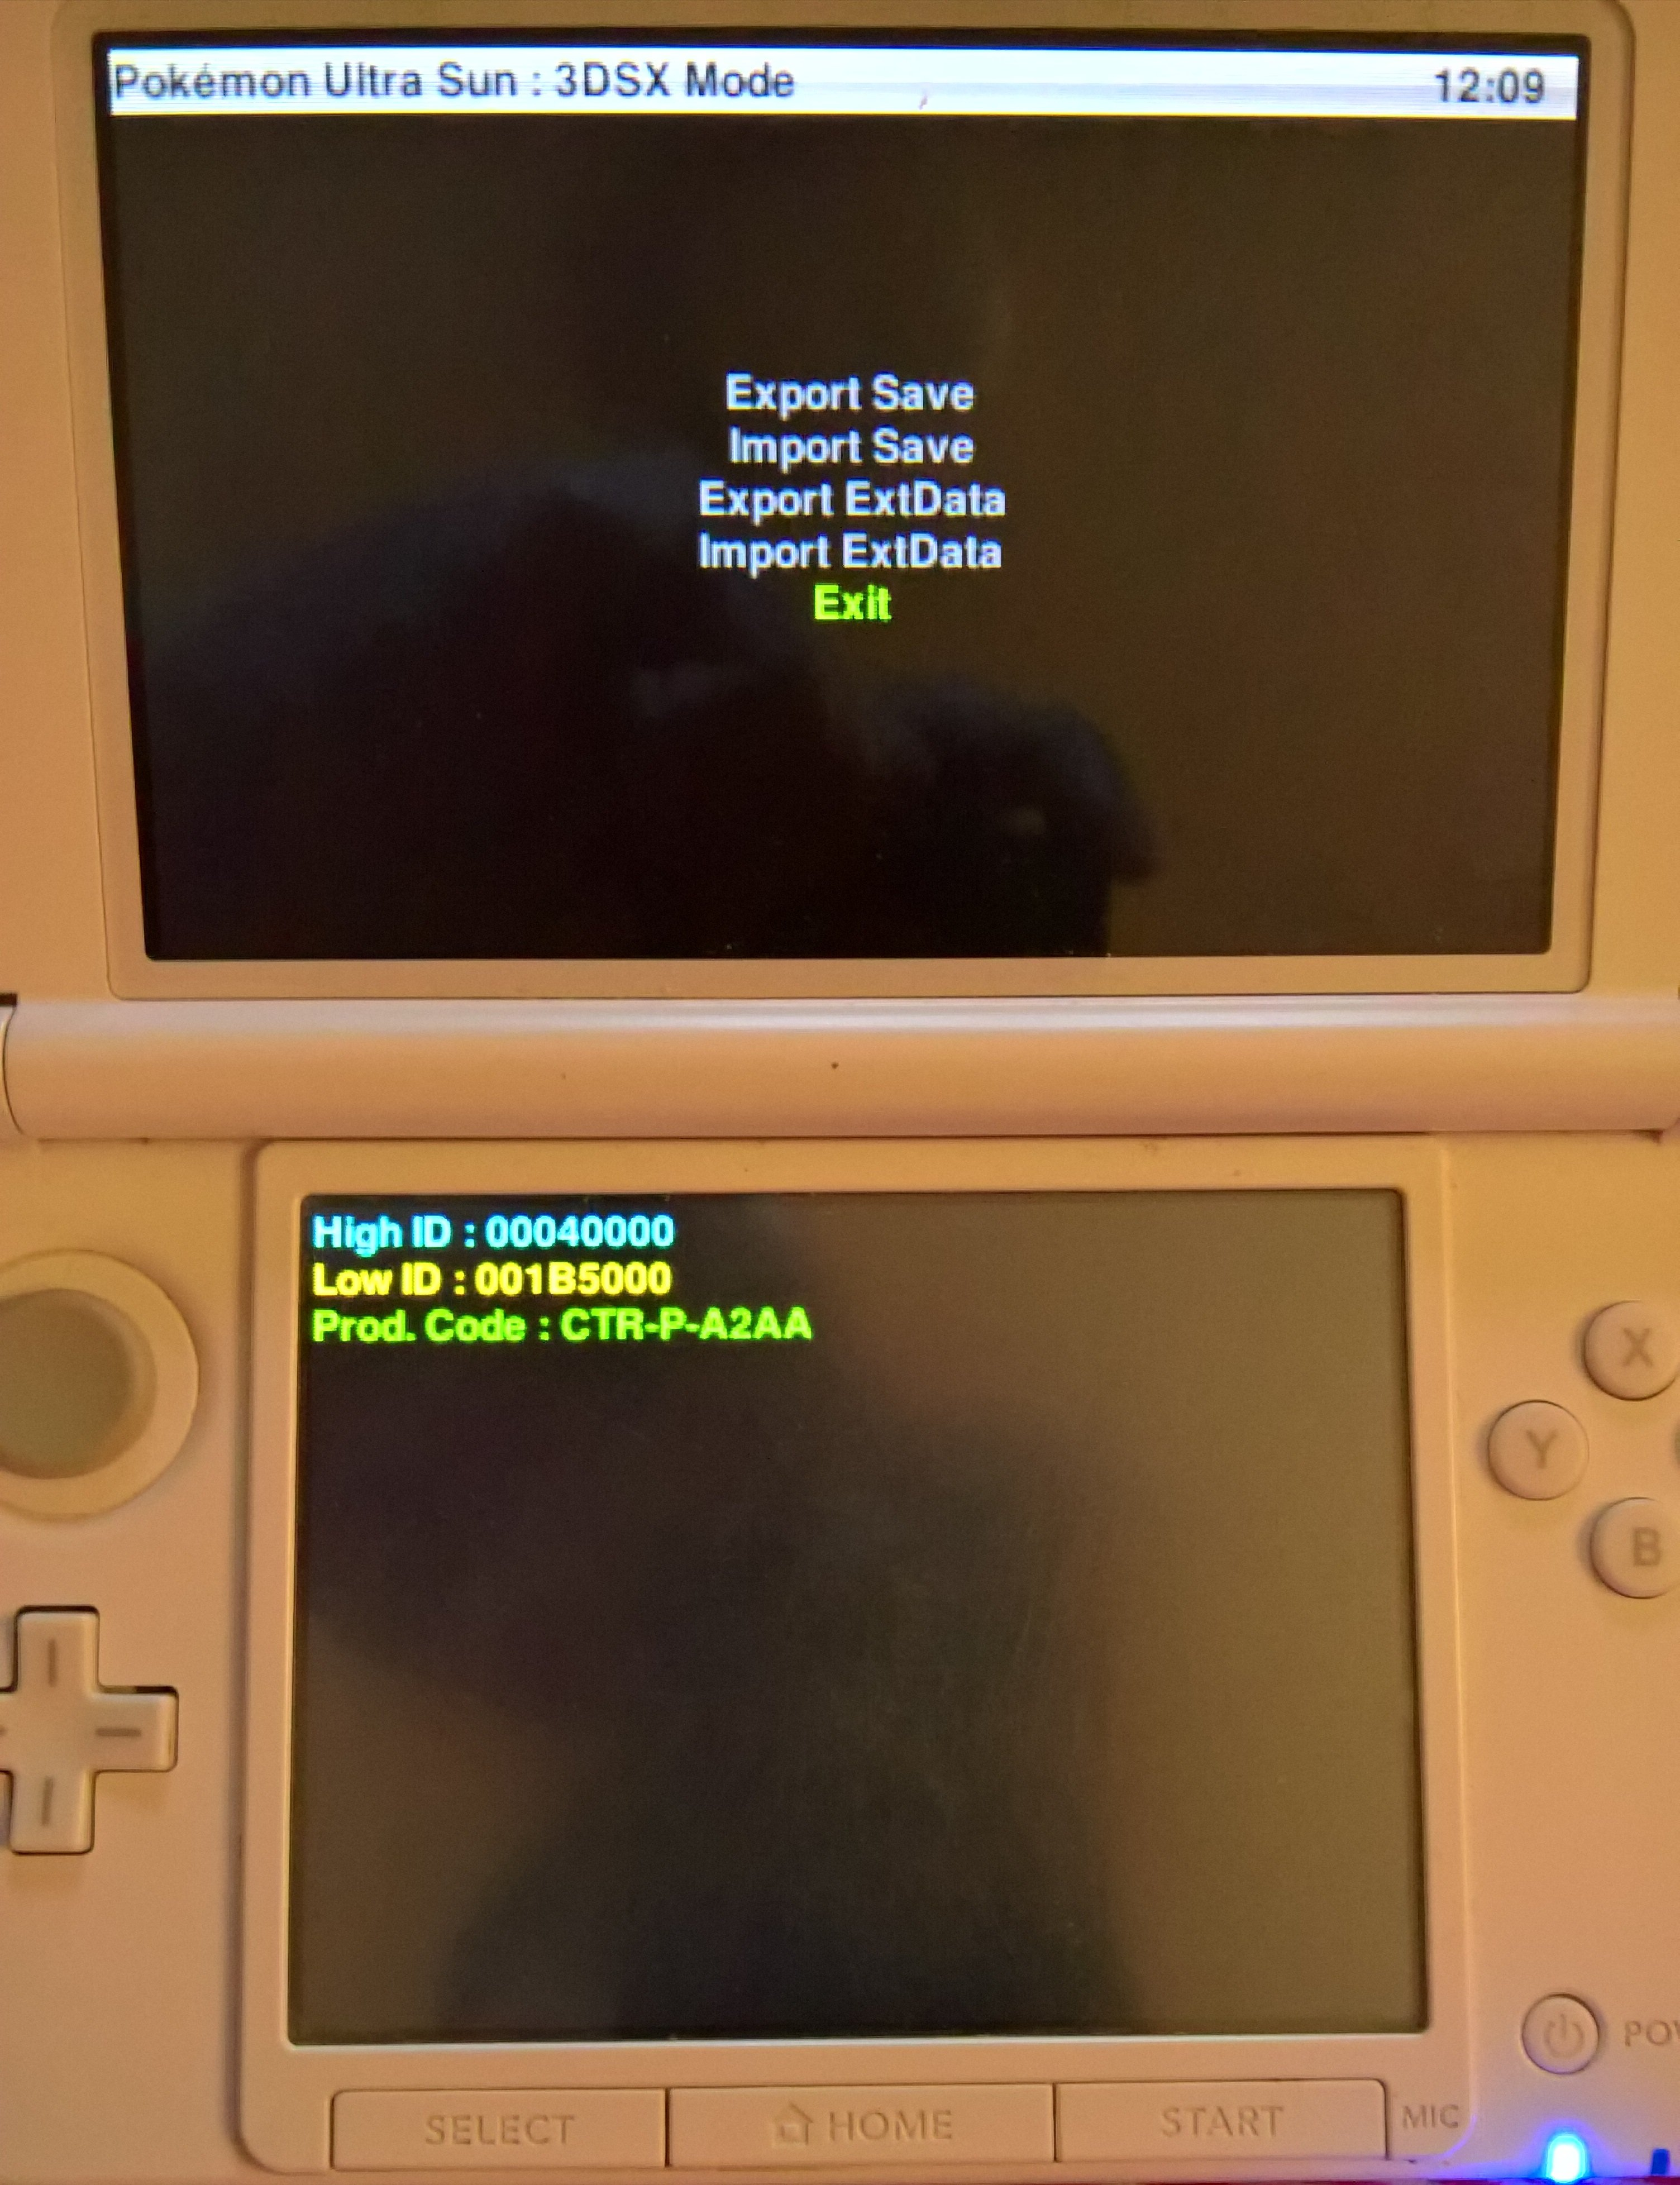 Managing 3DS Saves: Using JKSM - Saves - Guides and Other